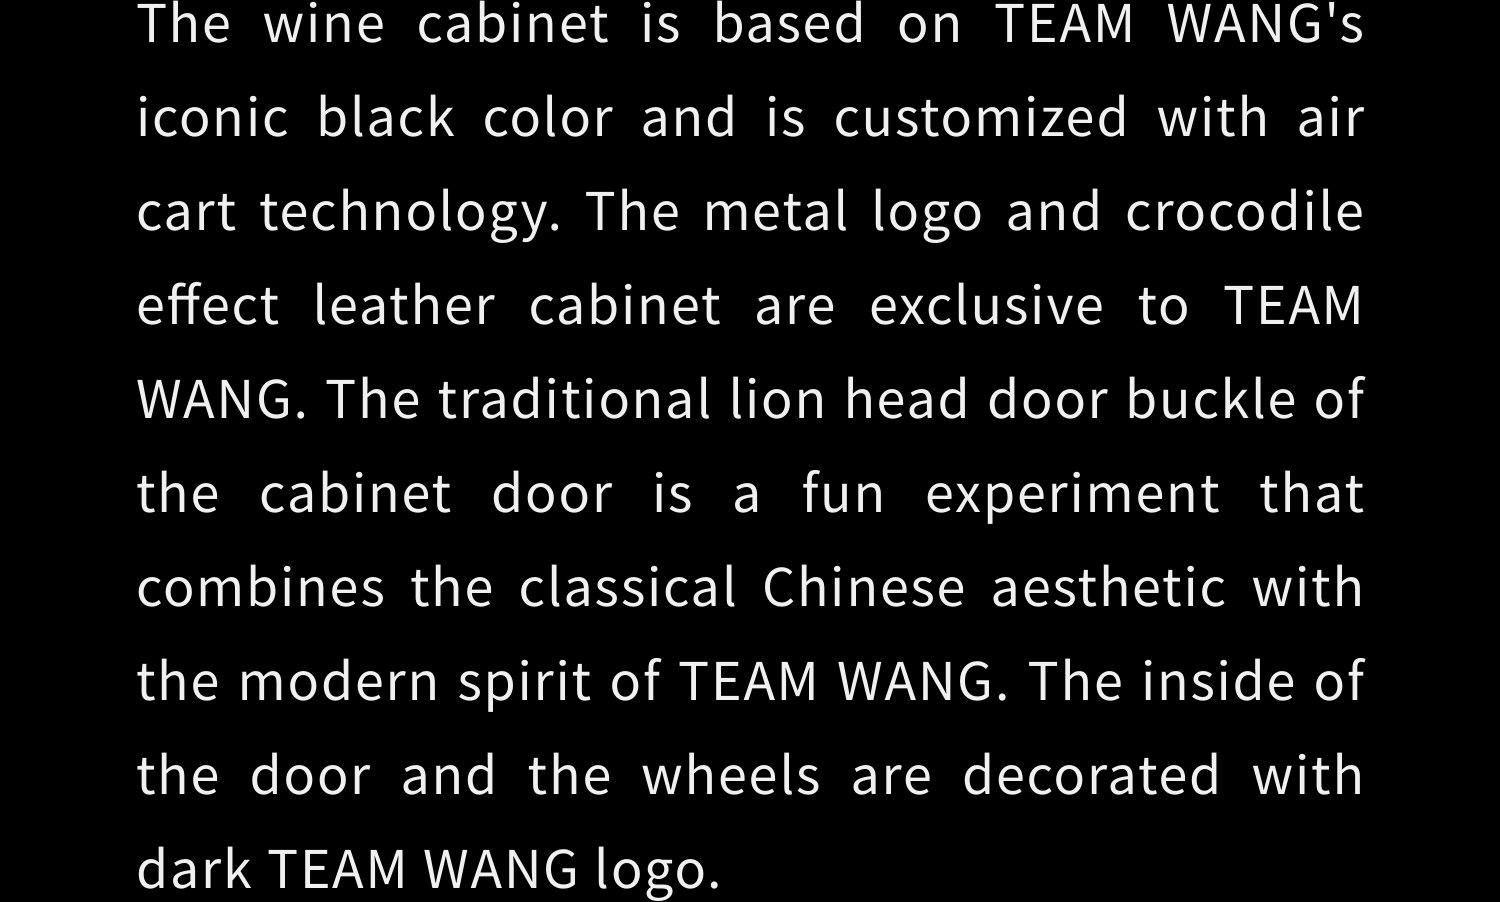 TEAM WANG THE CART